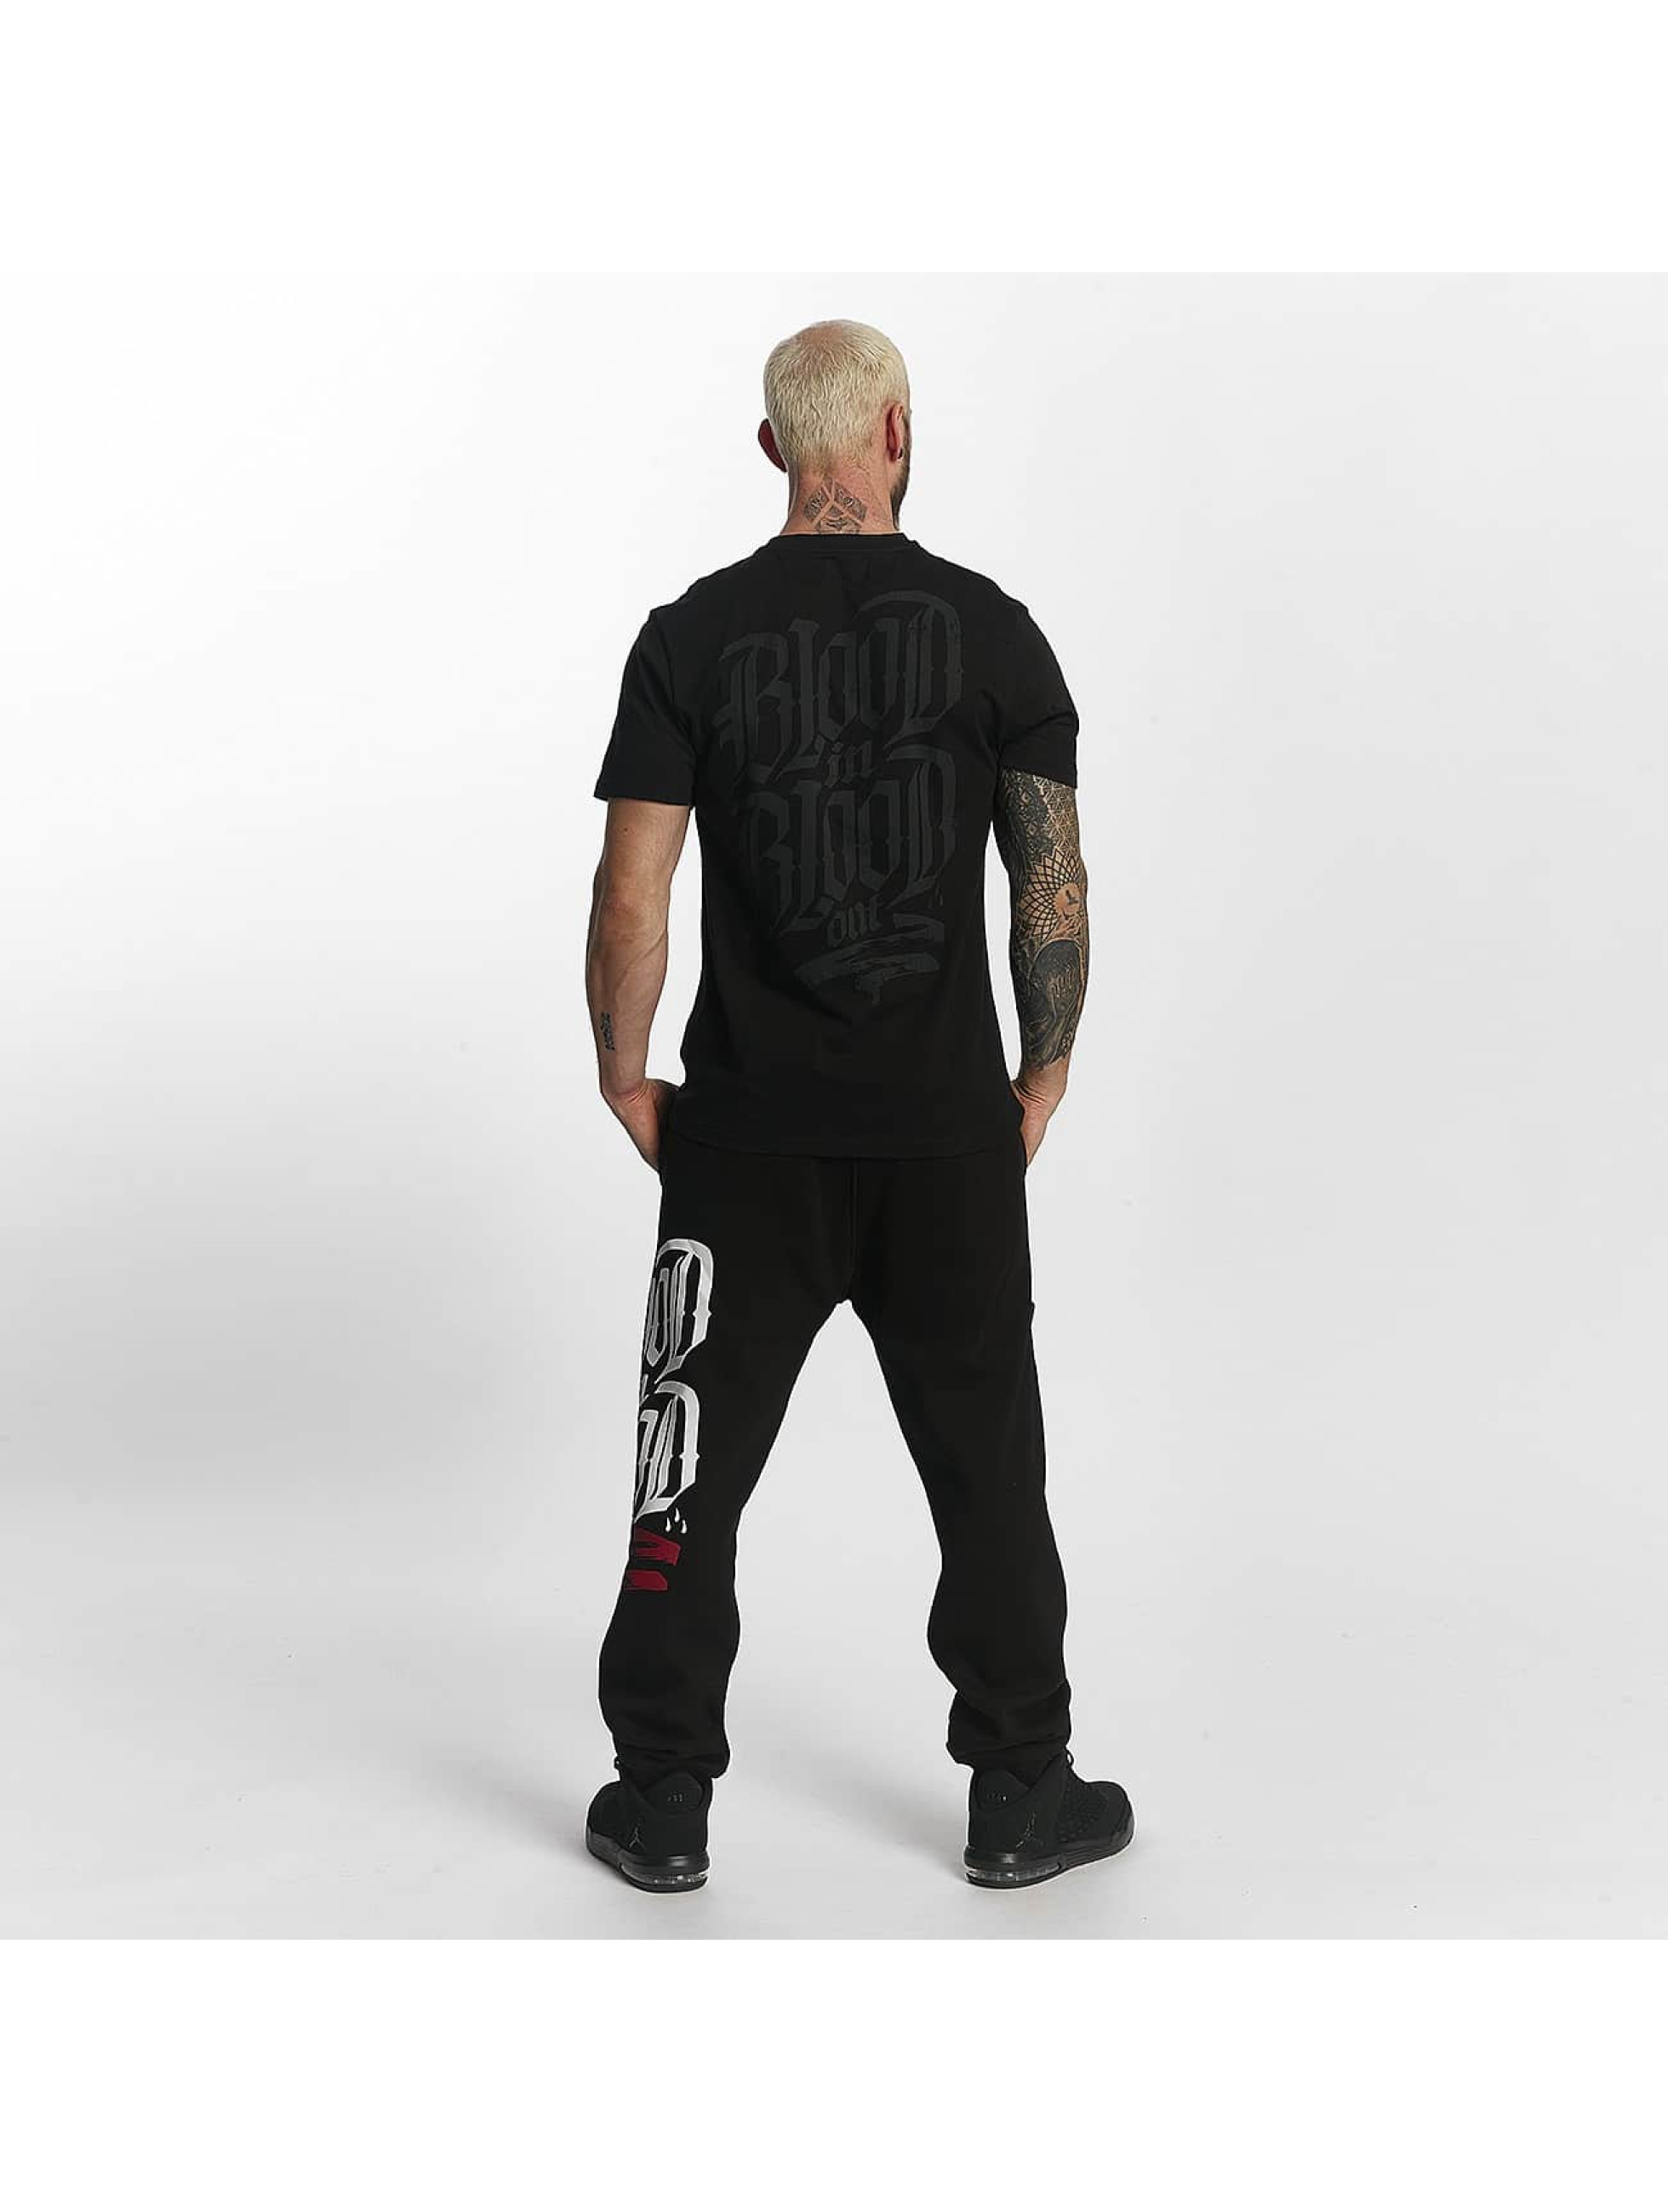 Blood In Blood Out Camiseta Escudo negro